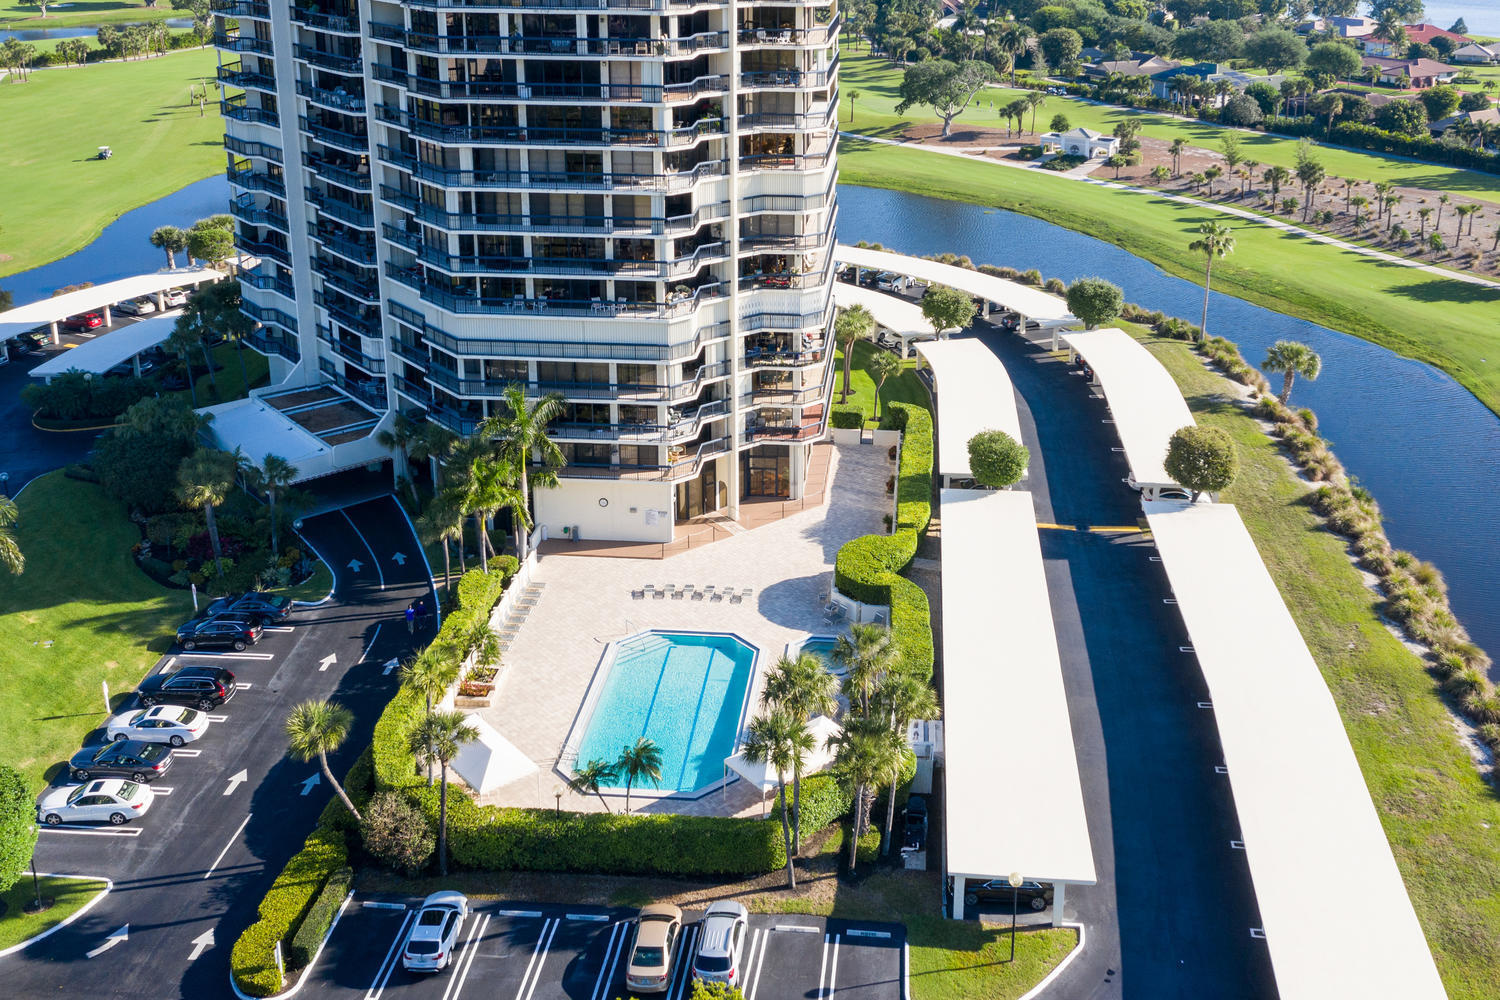 CONSULATE WEST PALM BEACH REAL ESTATE